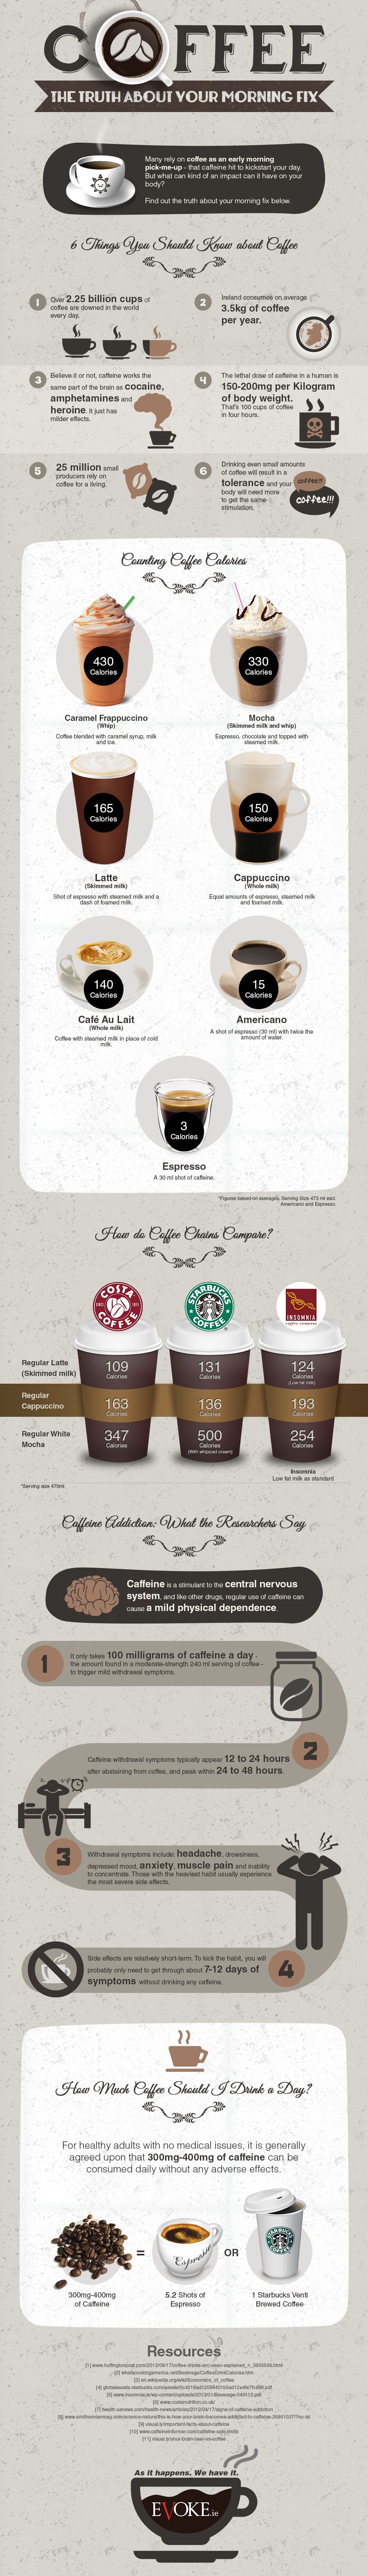 Is Your Morning Fix Of Coffee Unhealthy Coffee Infographic Coffee Facts Healthy Coffee